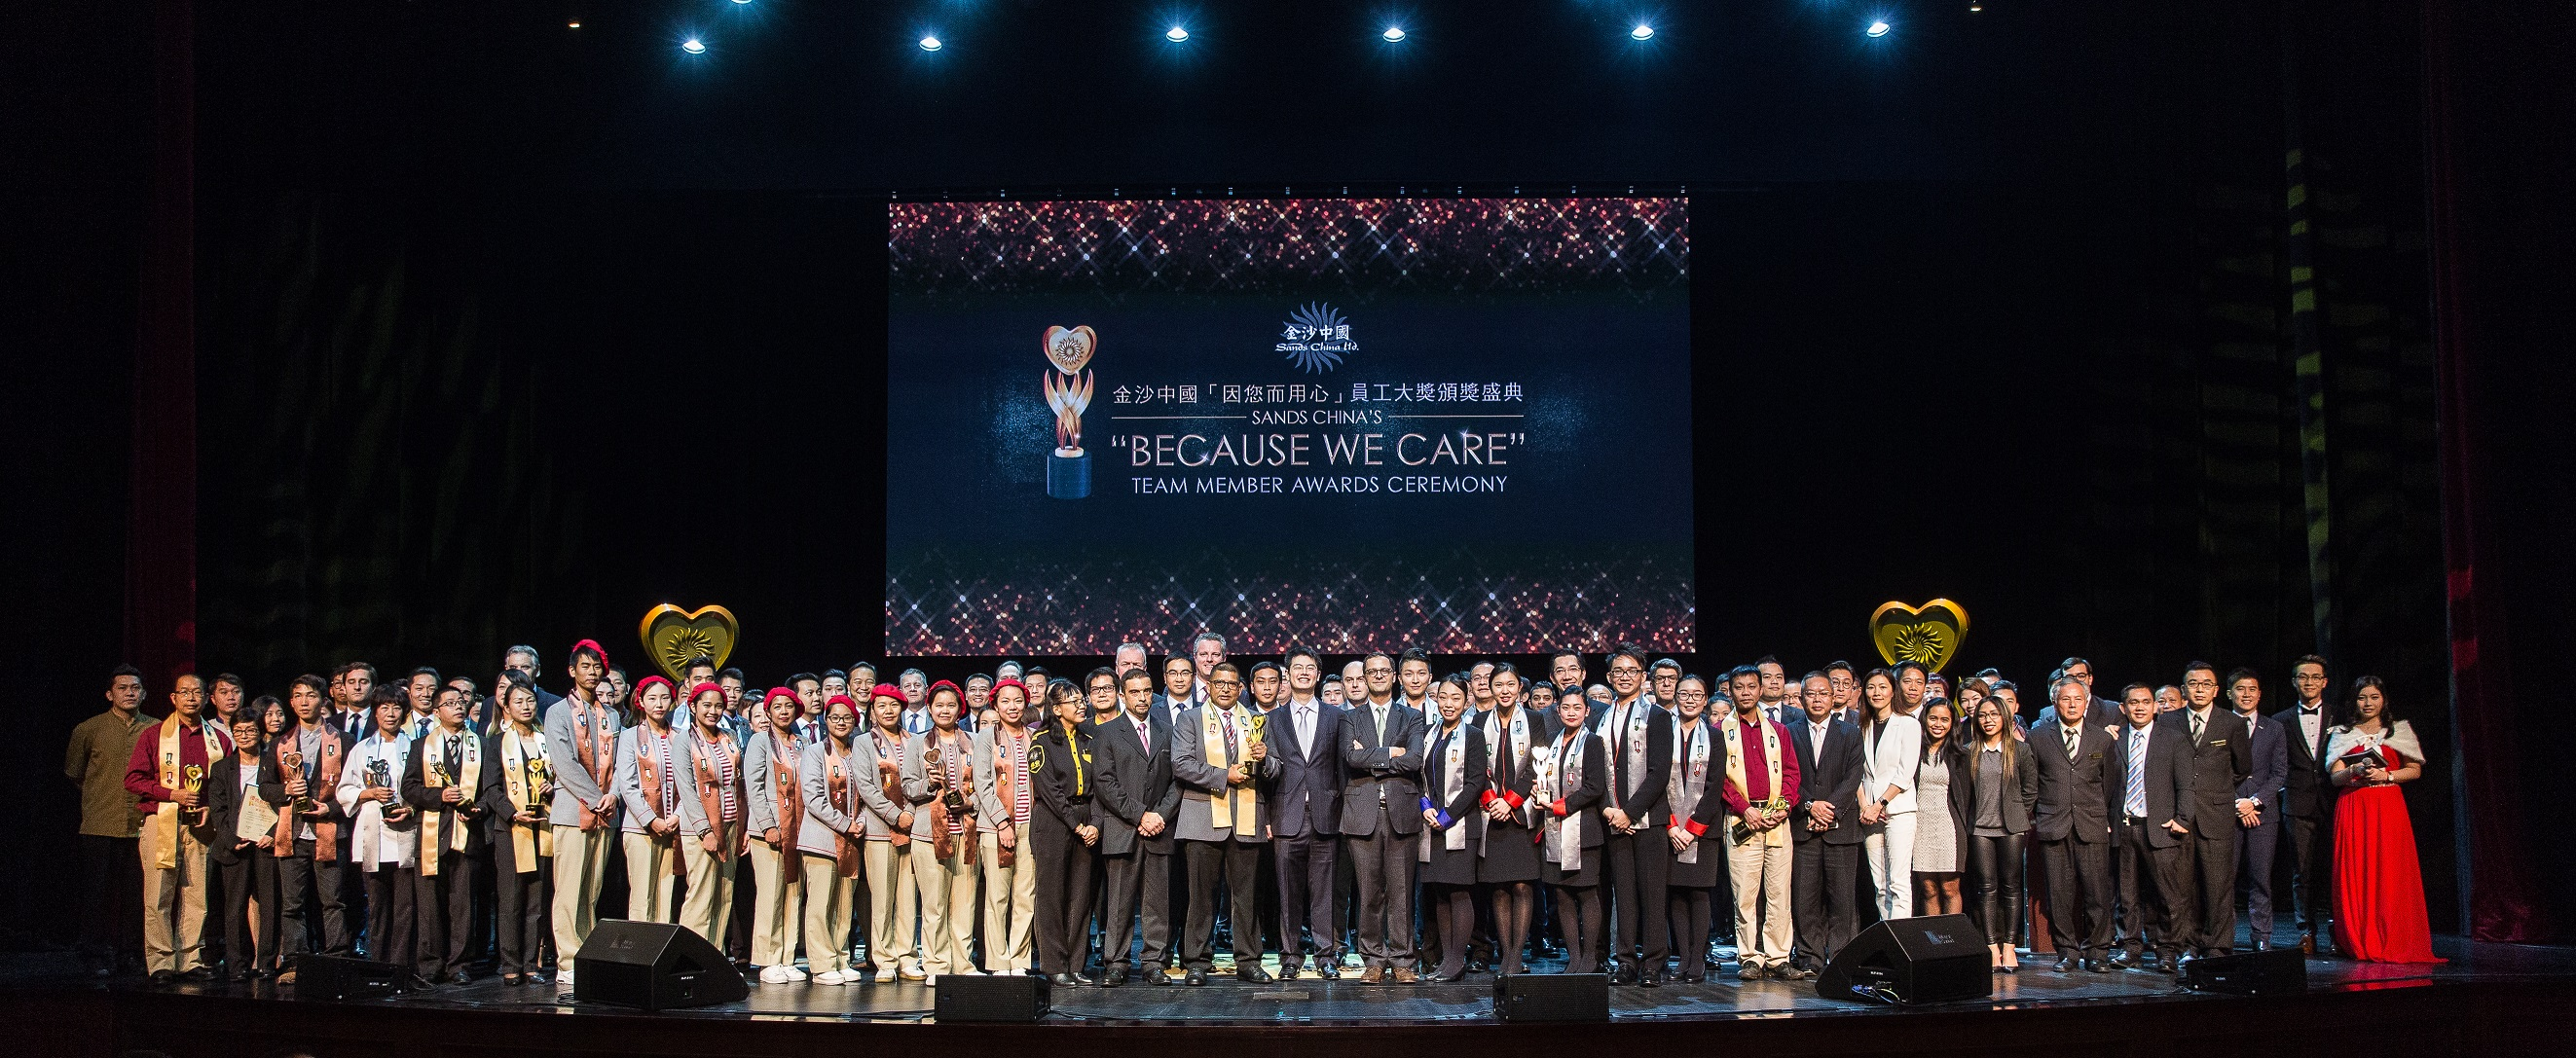 Sands China team members are recognised